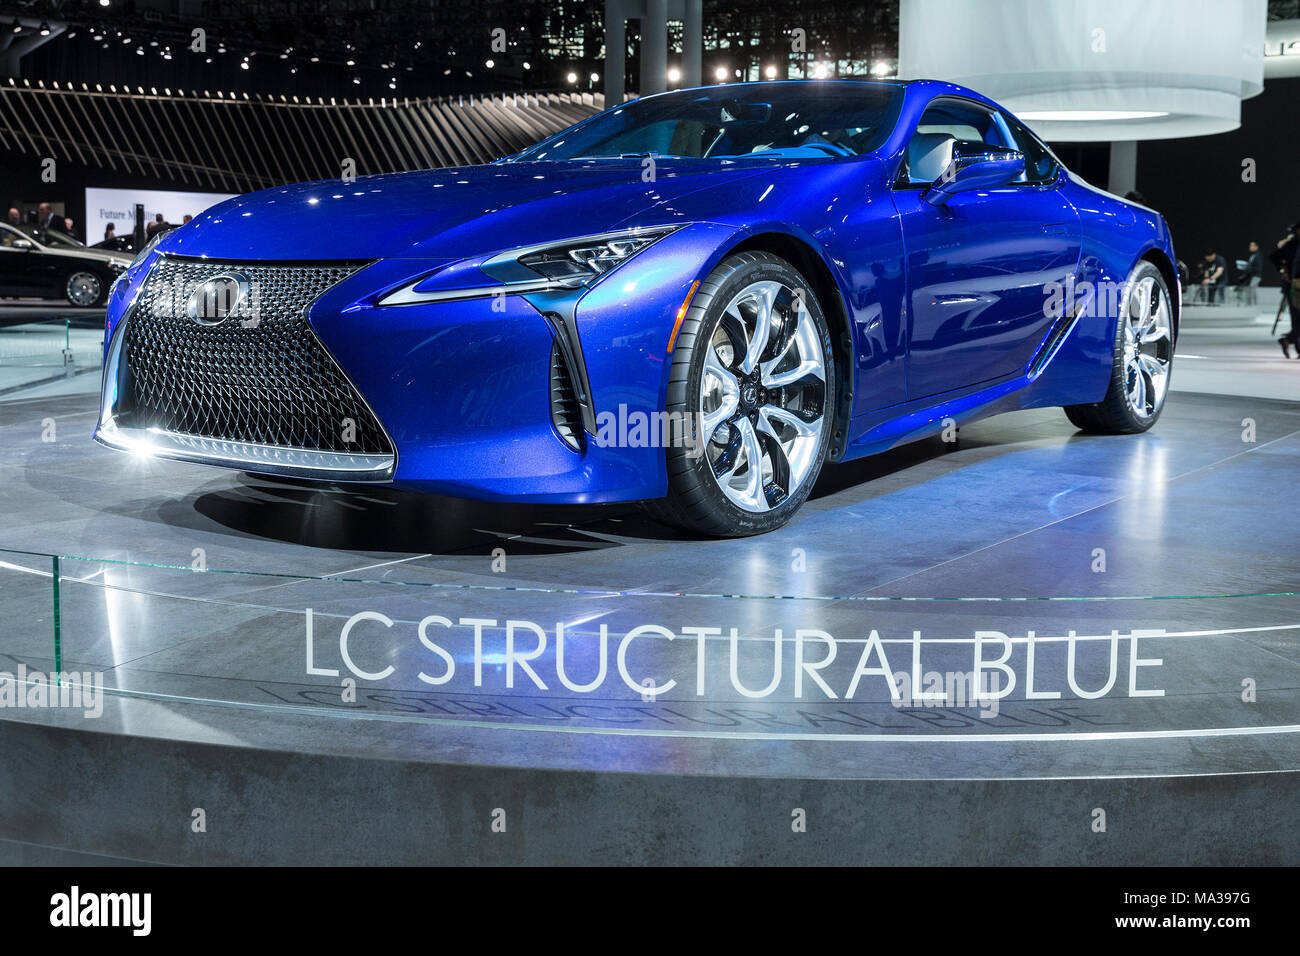 Lexus Lc500 Lc Structural Blue Coupe On Display At 2018 New York